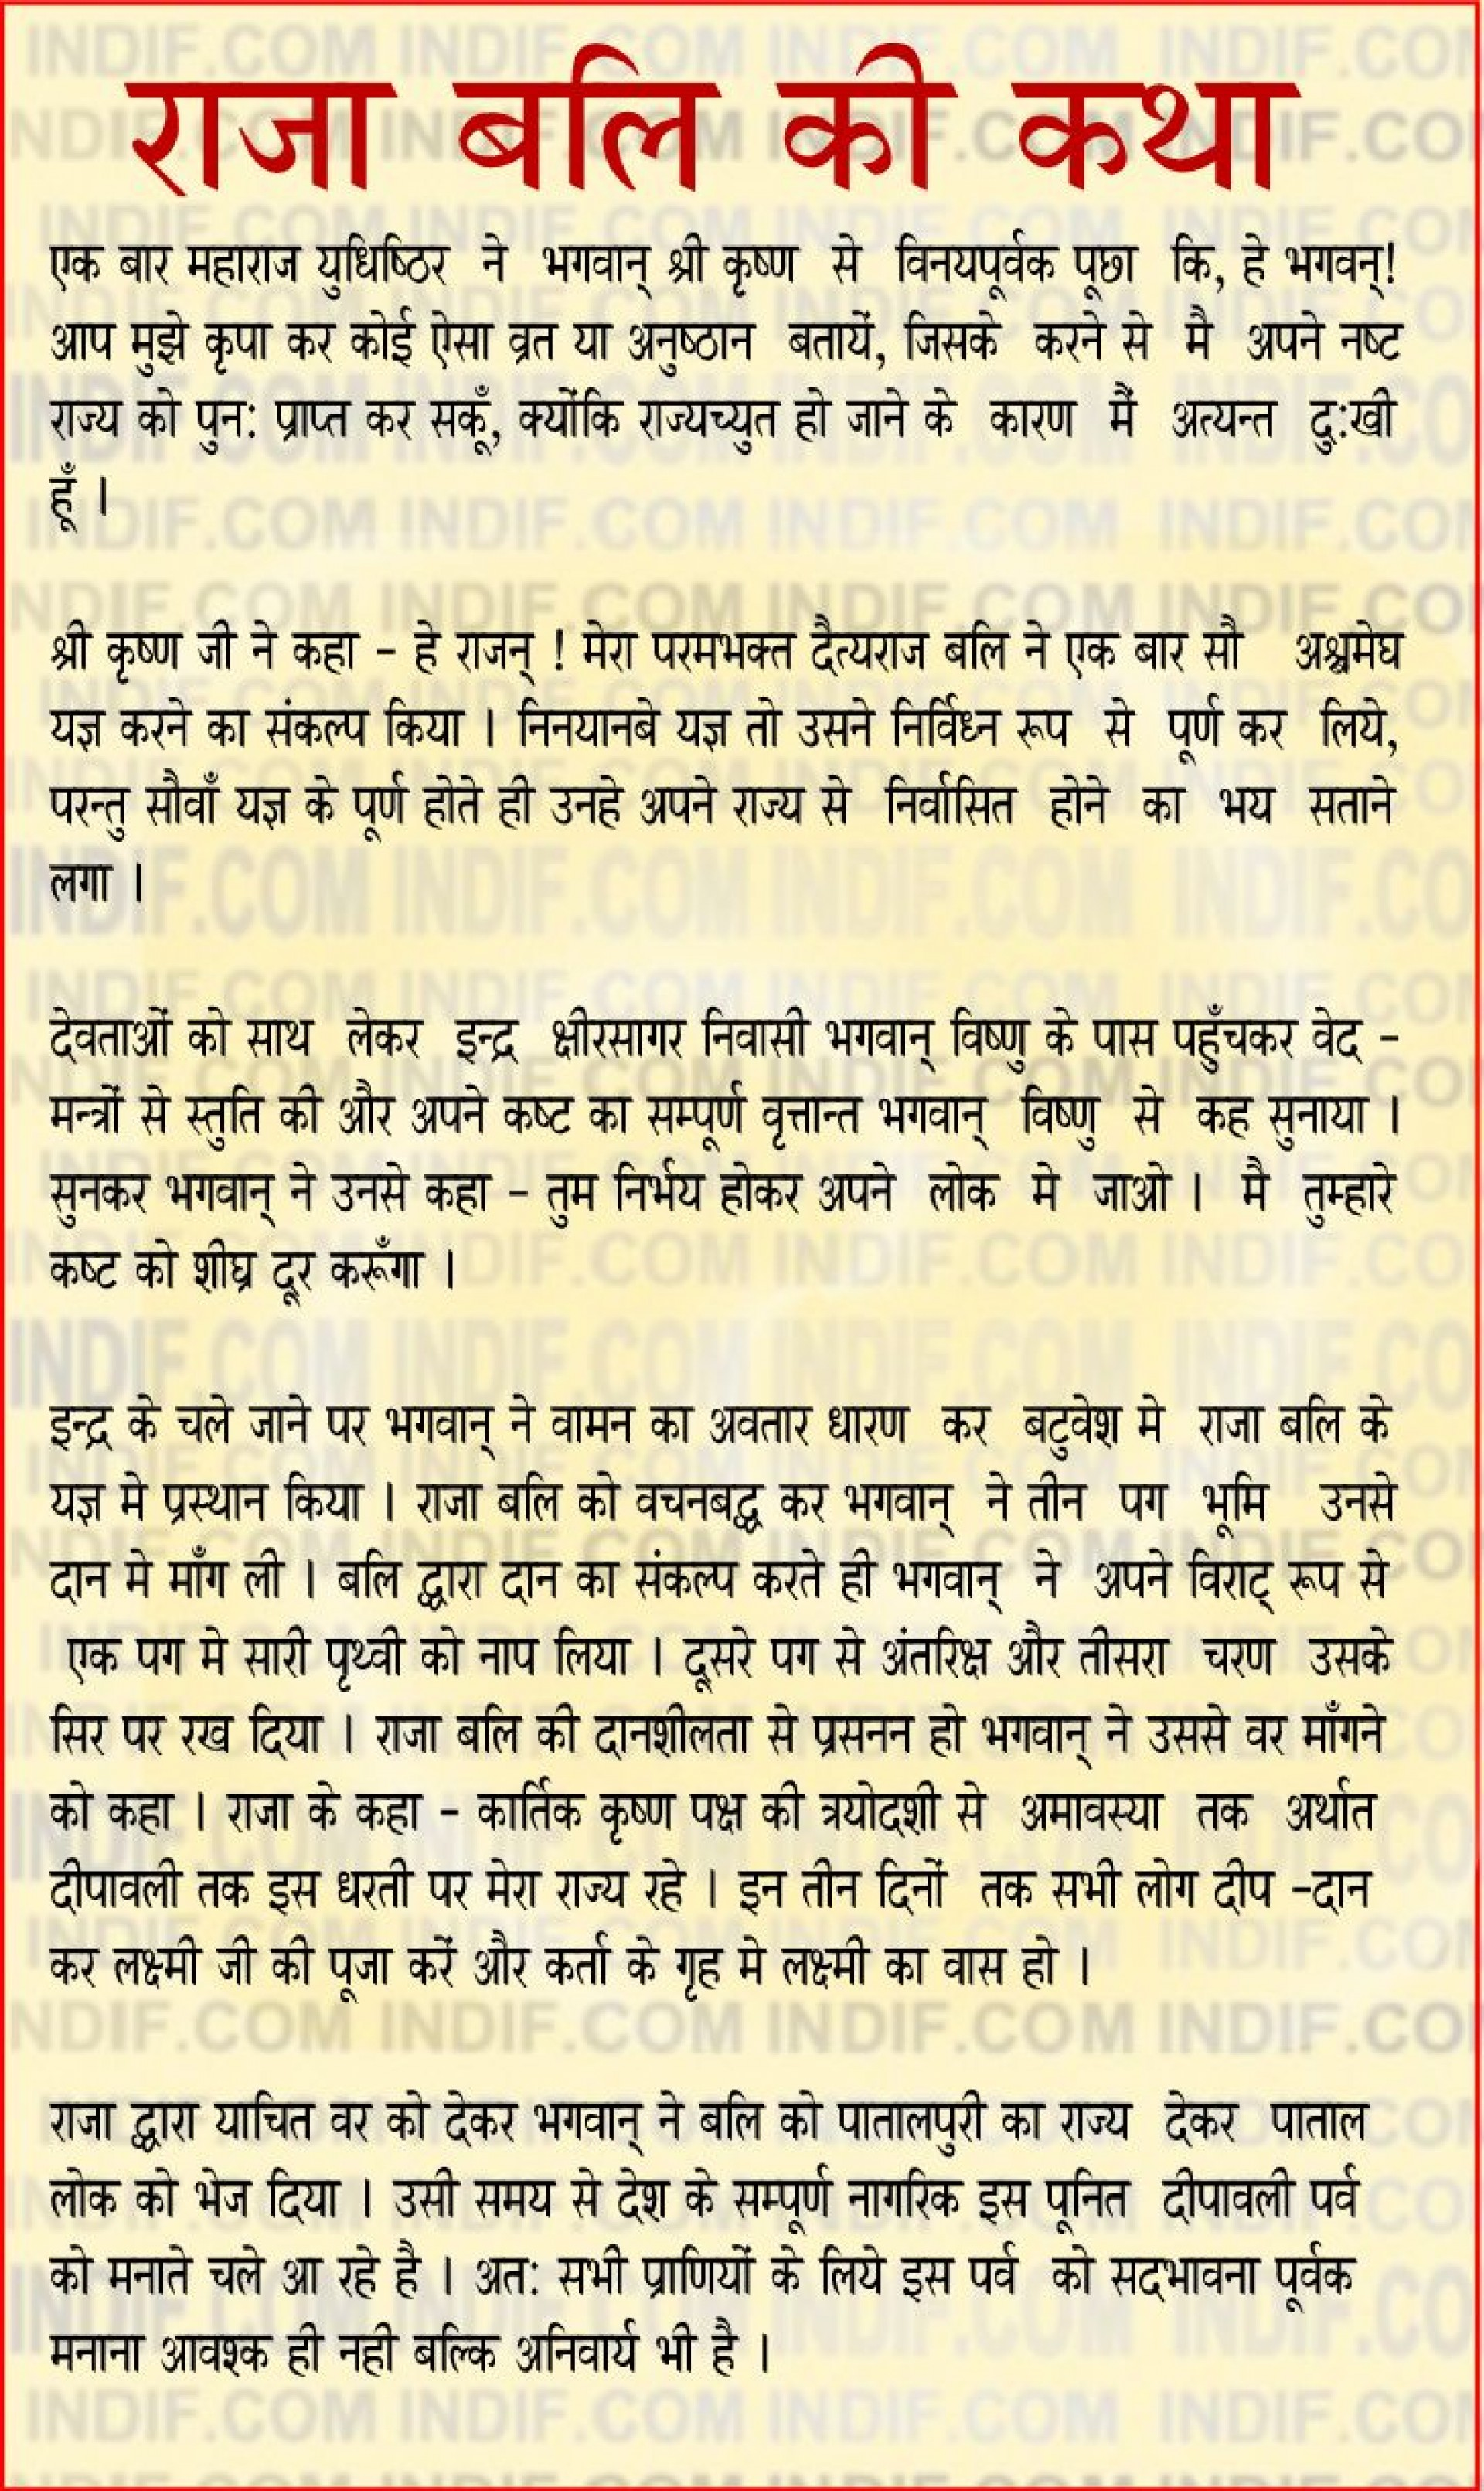 008 Essay Example For Diwali In Hindi Katha Fantastic On 50 Words Class Short 3 1920